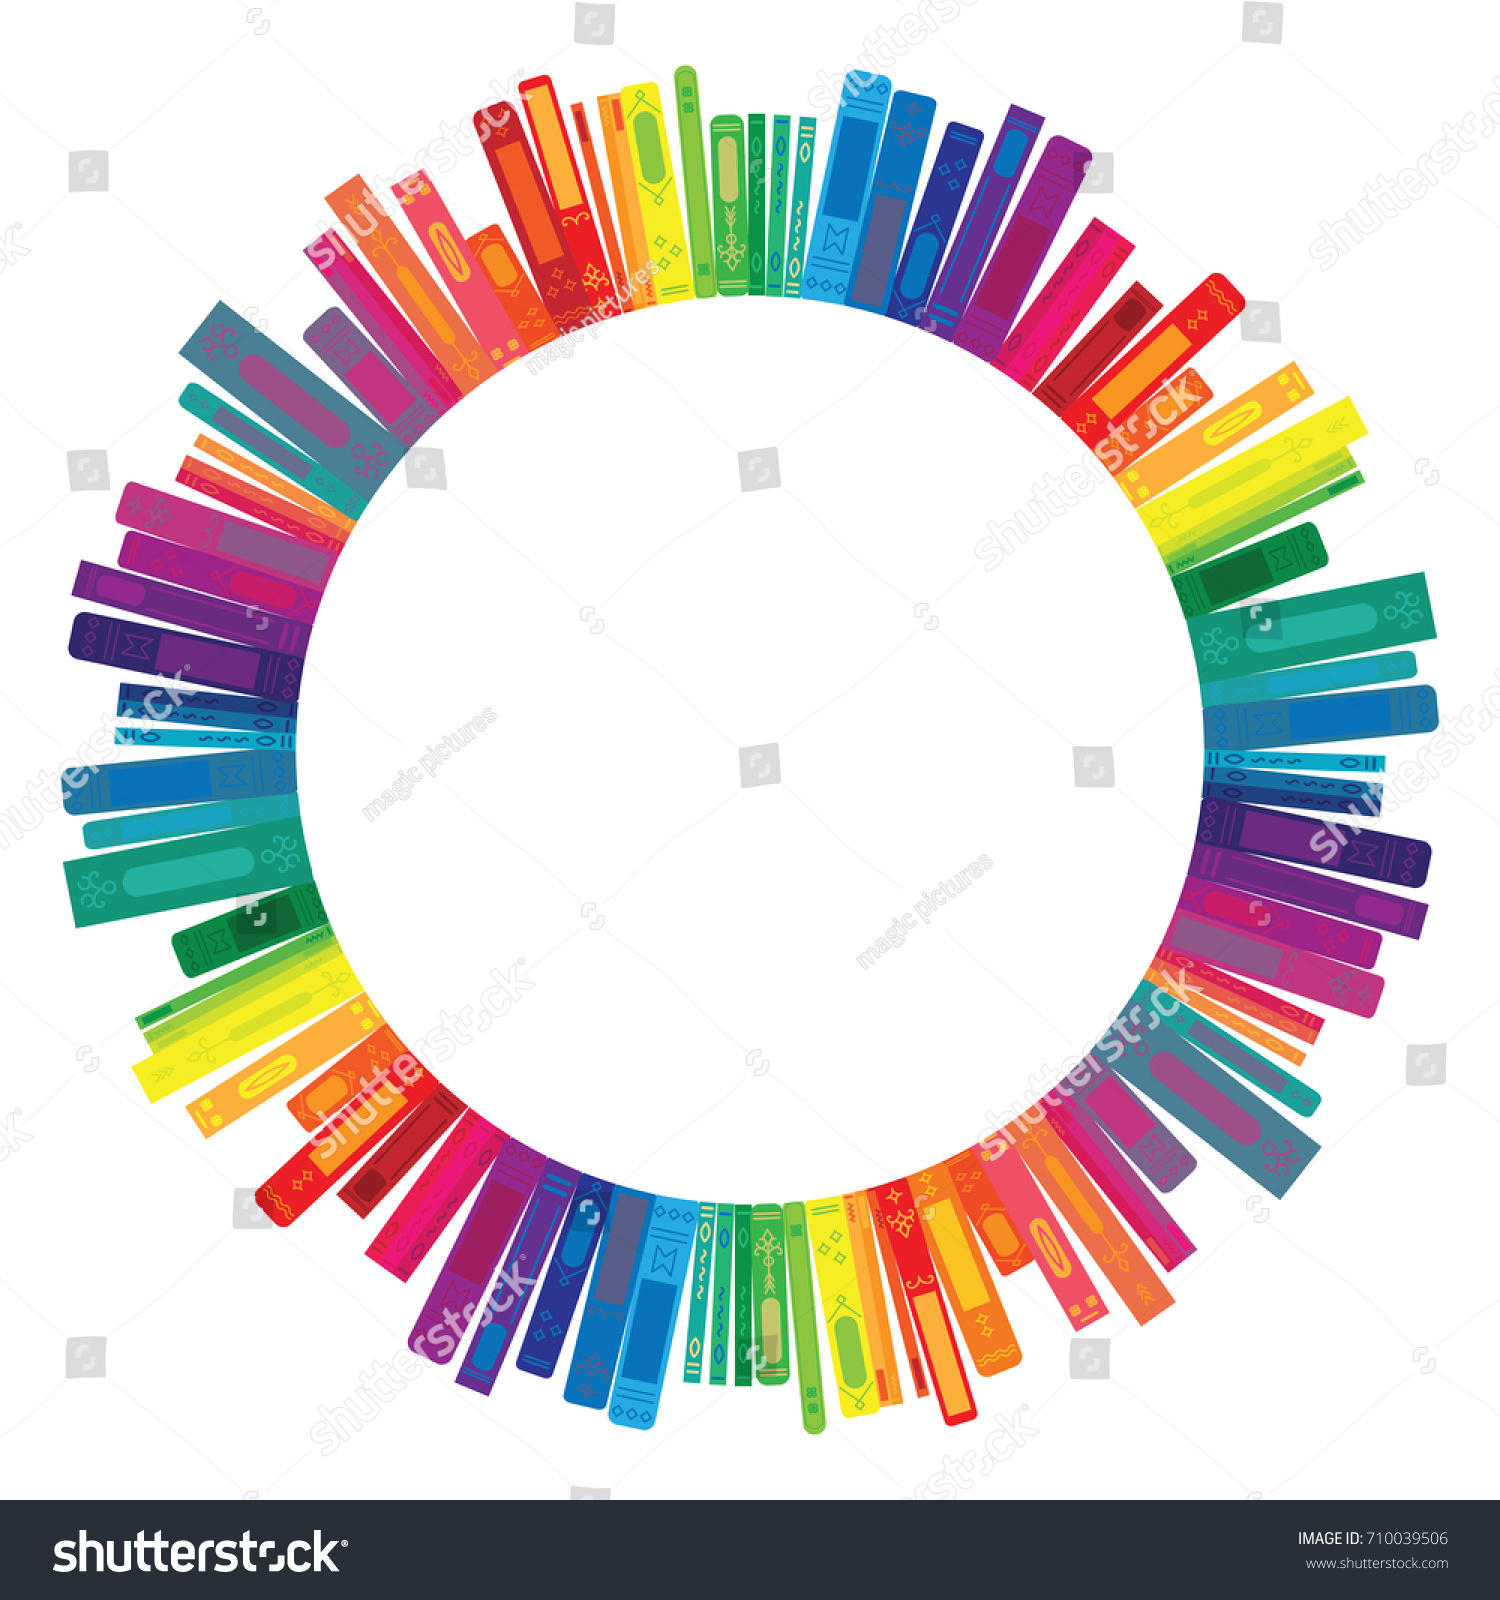 Vector Illustration Books Rainbow Colors Round Stock Vector (Royalty ...